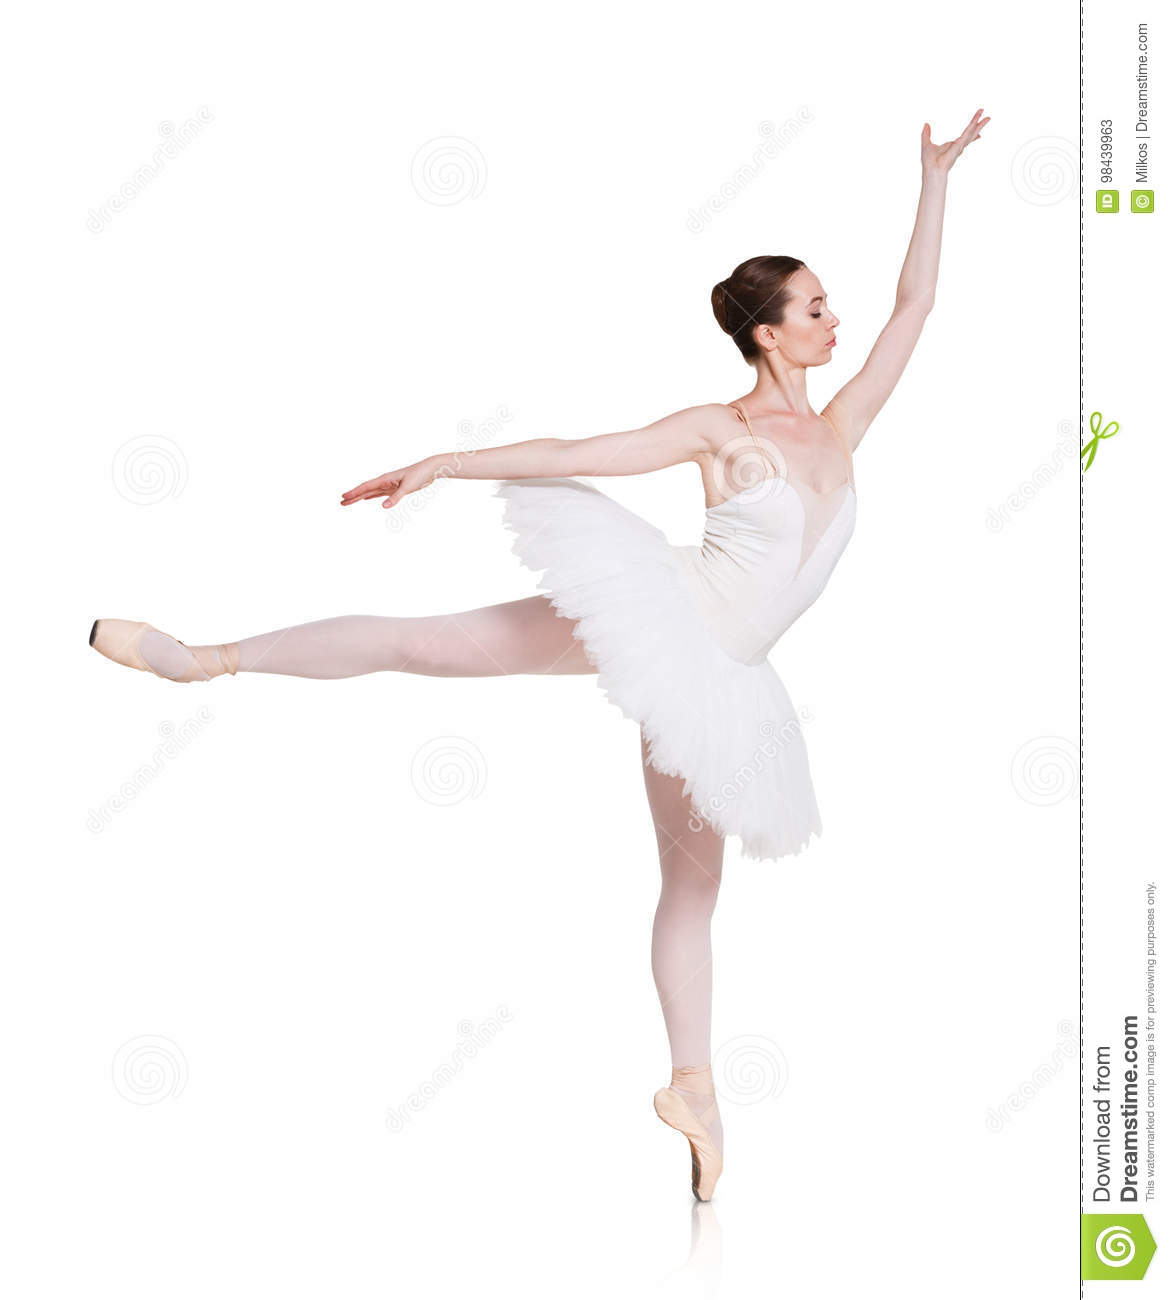 bd0131b1e5681 Ballerina making arabesque against white background, isolated. Professional  dancer in tutu skirt and pointe. Choreography classes concept